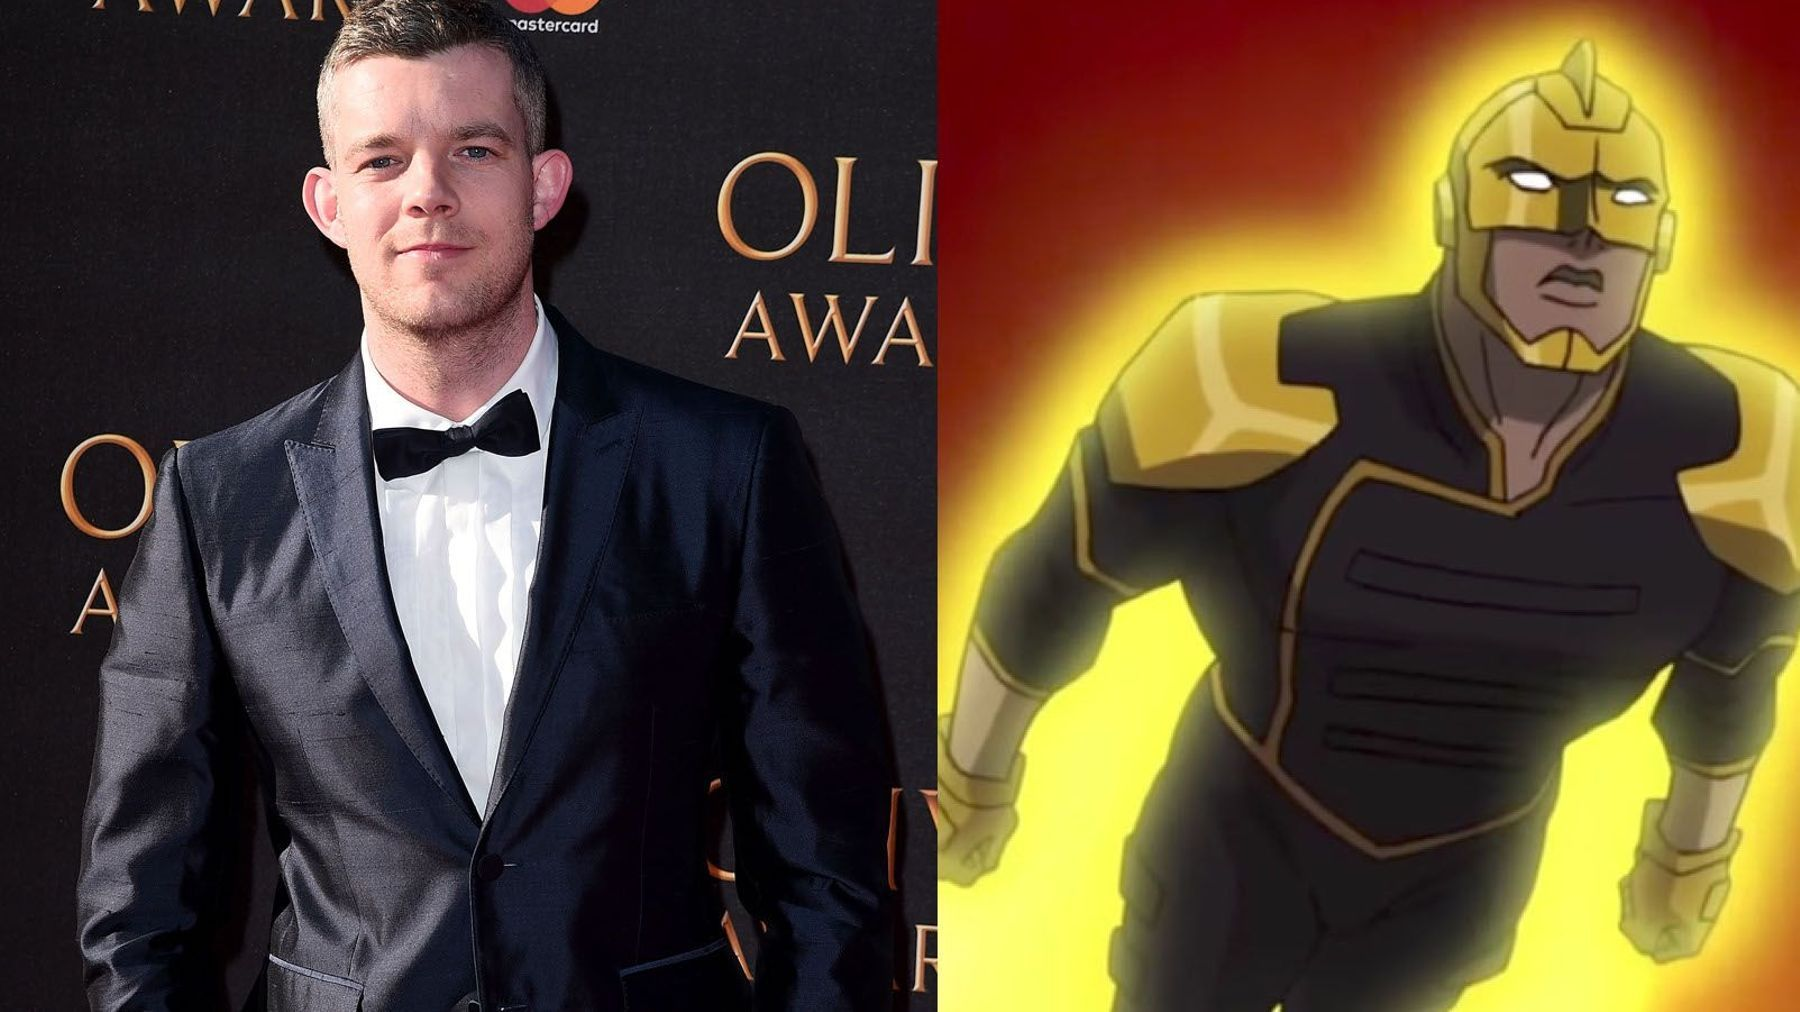 Russell Tovey Cast as Gay Superhero in The CW Crossover